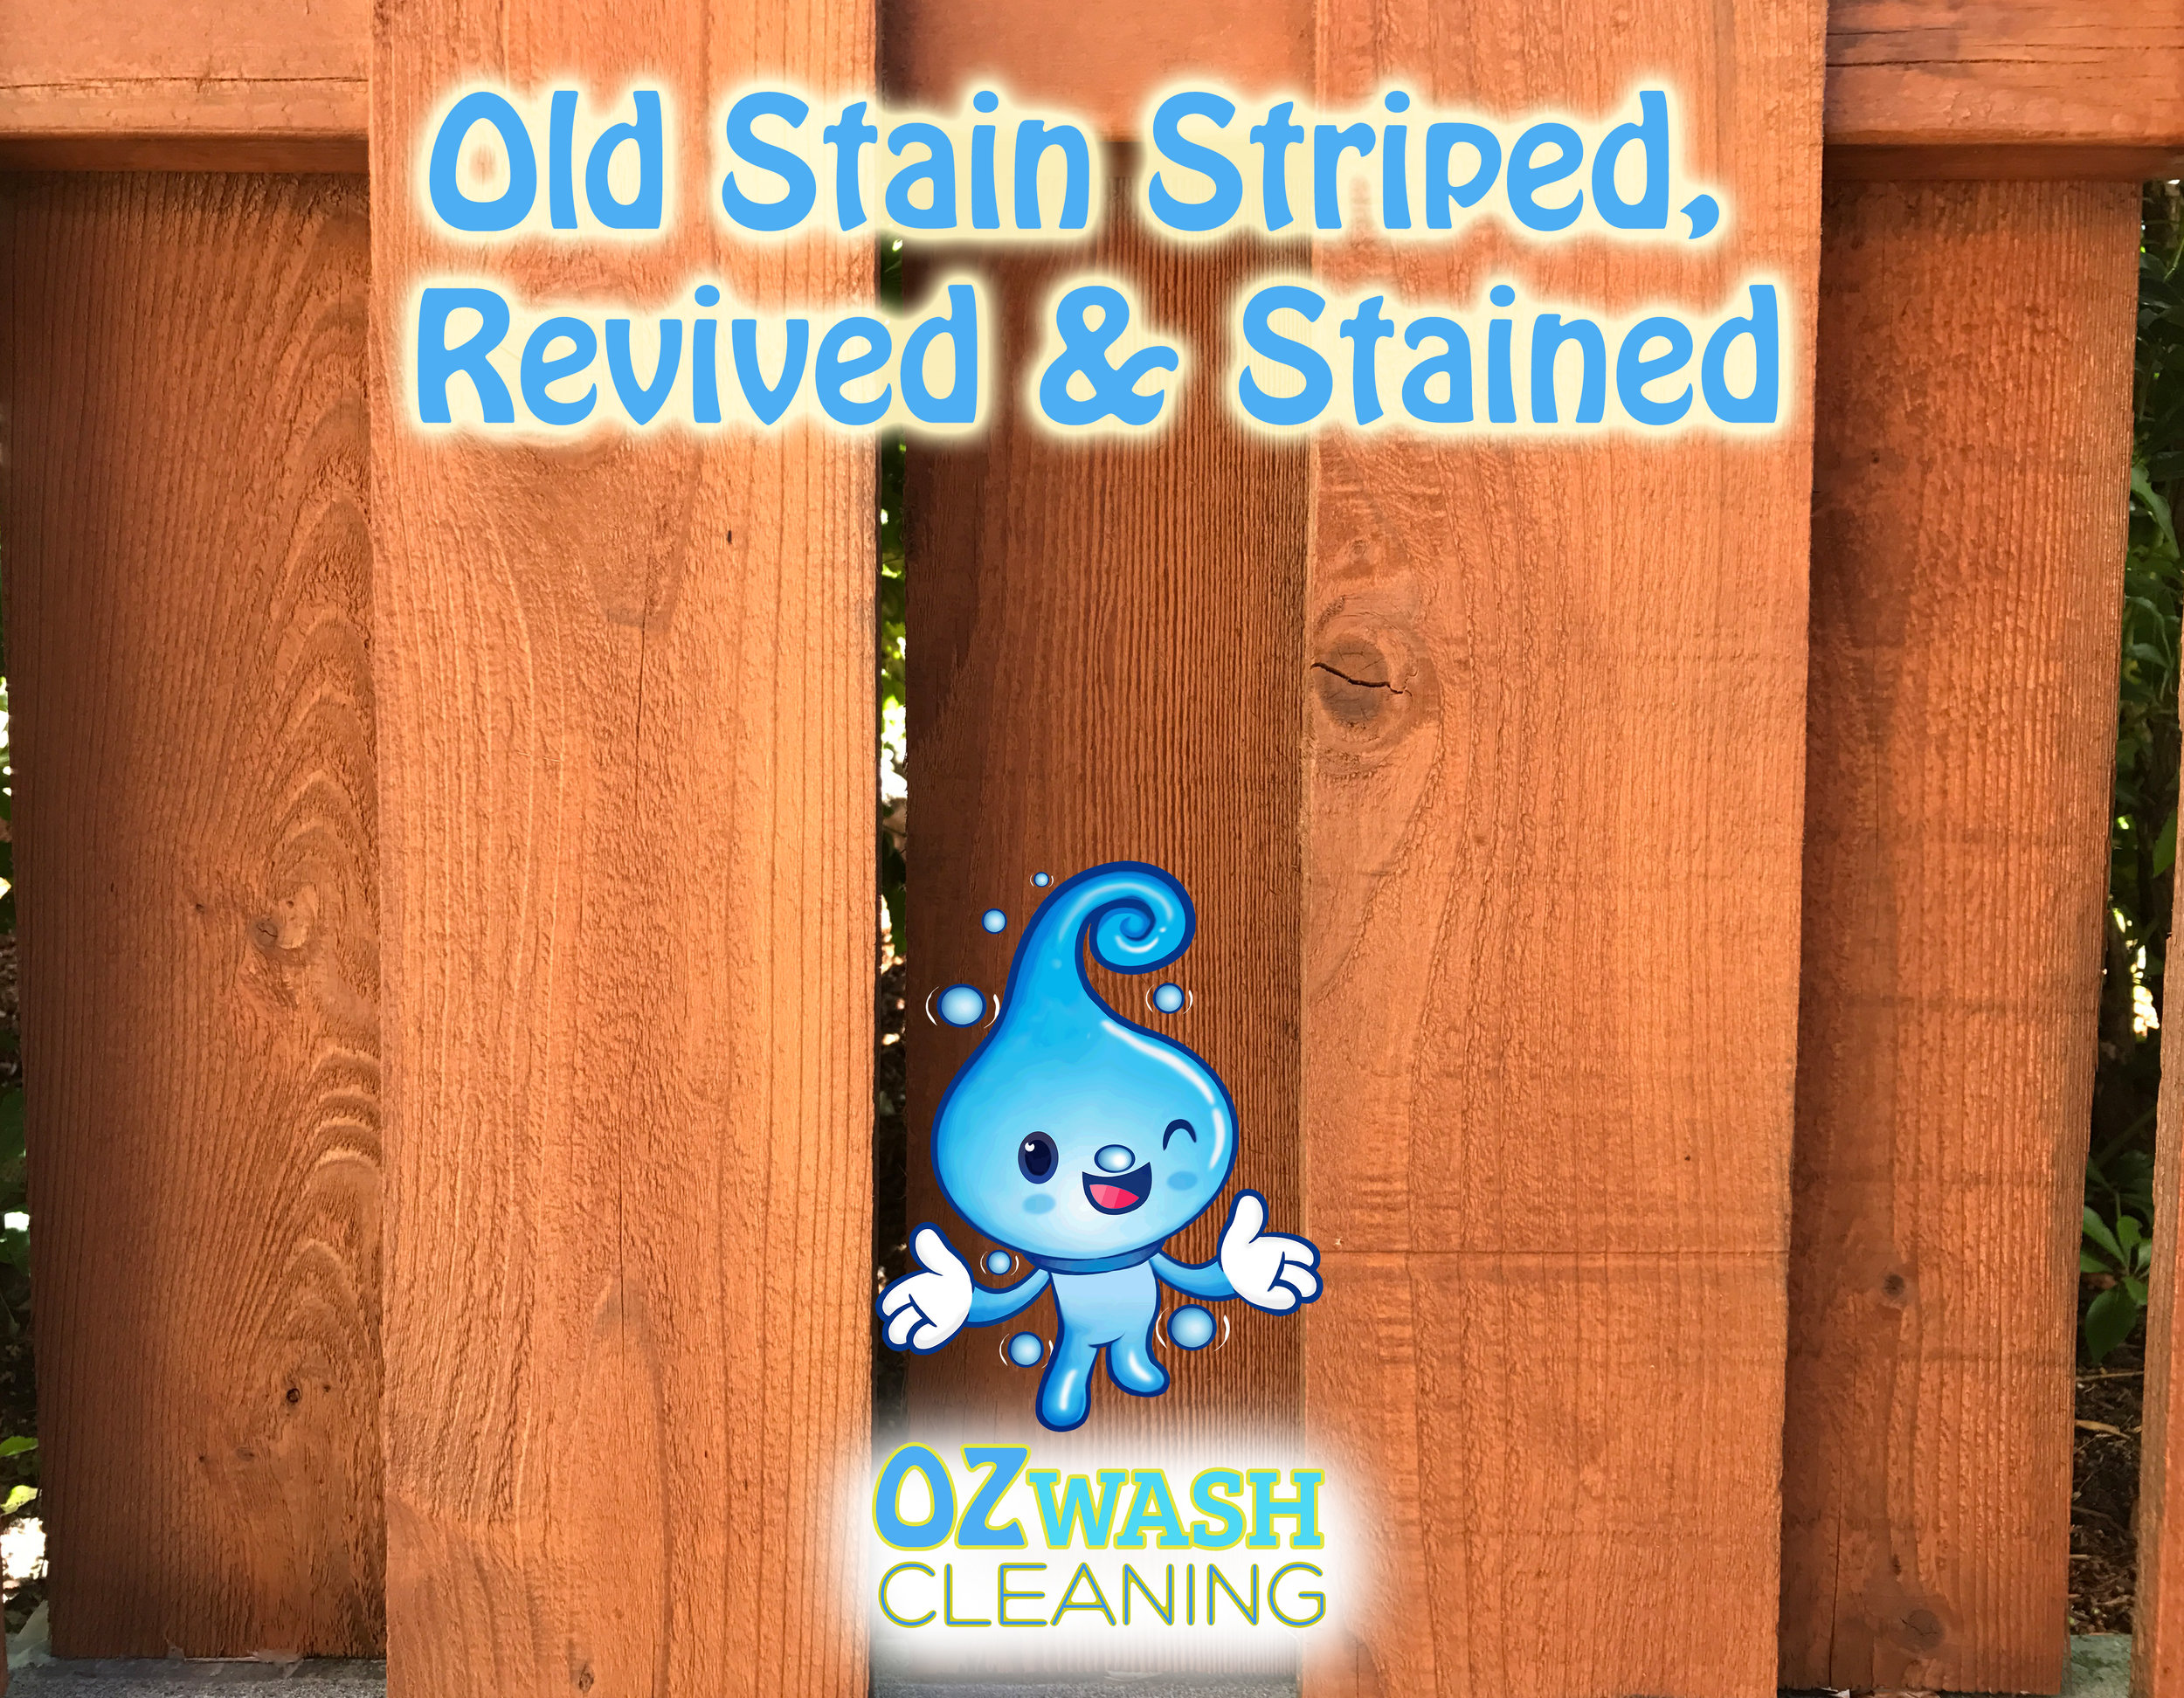 Old Stain Stripping5.jpg